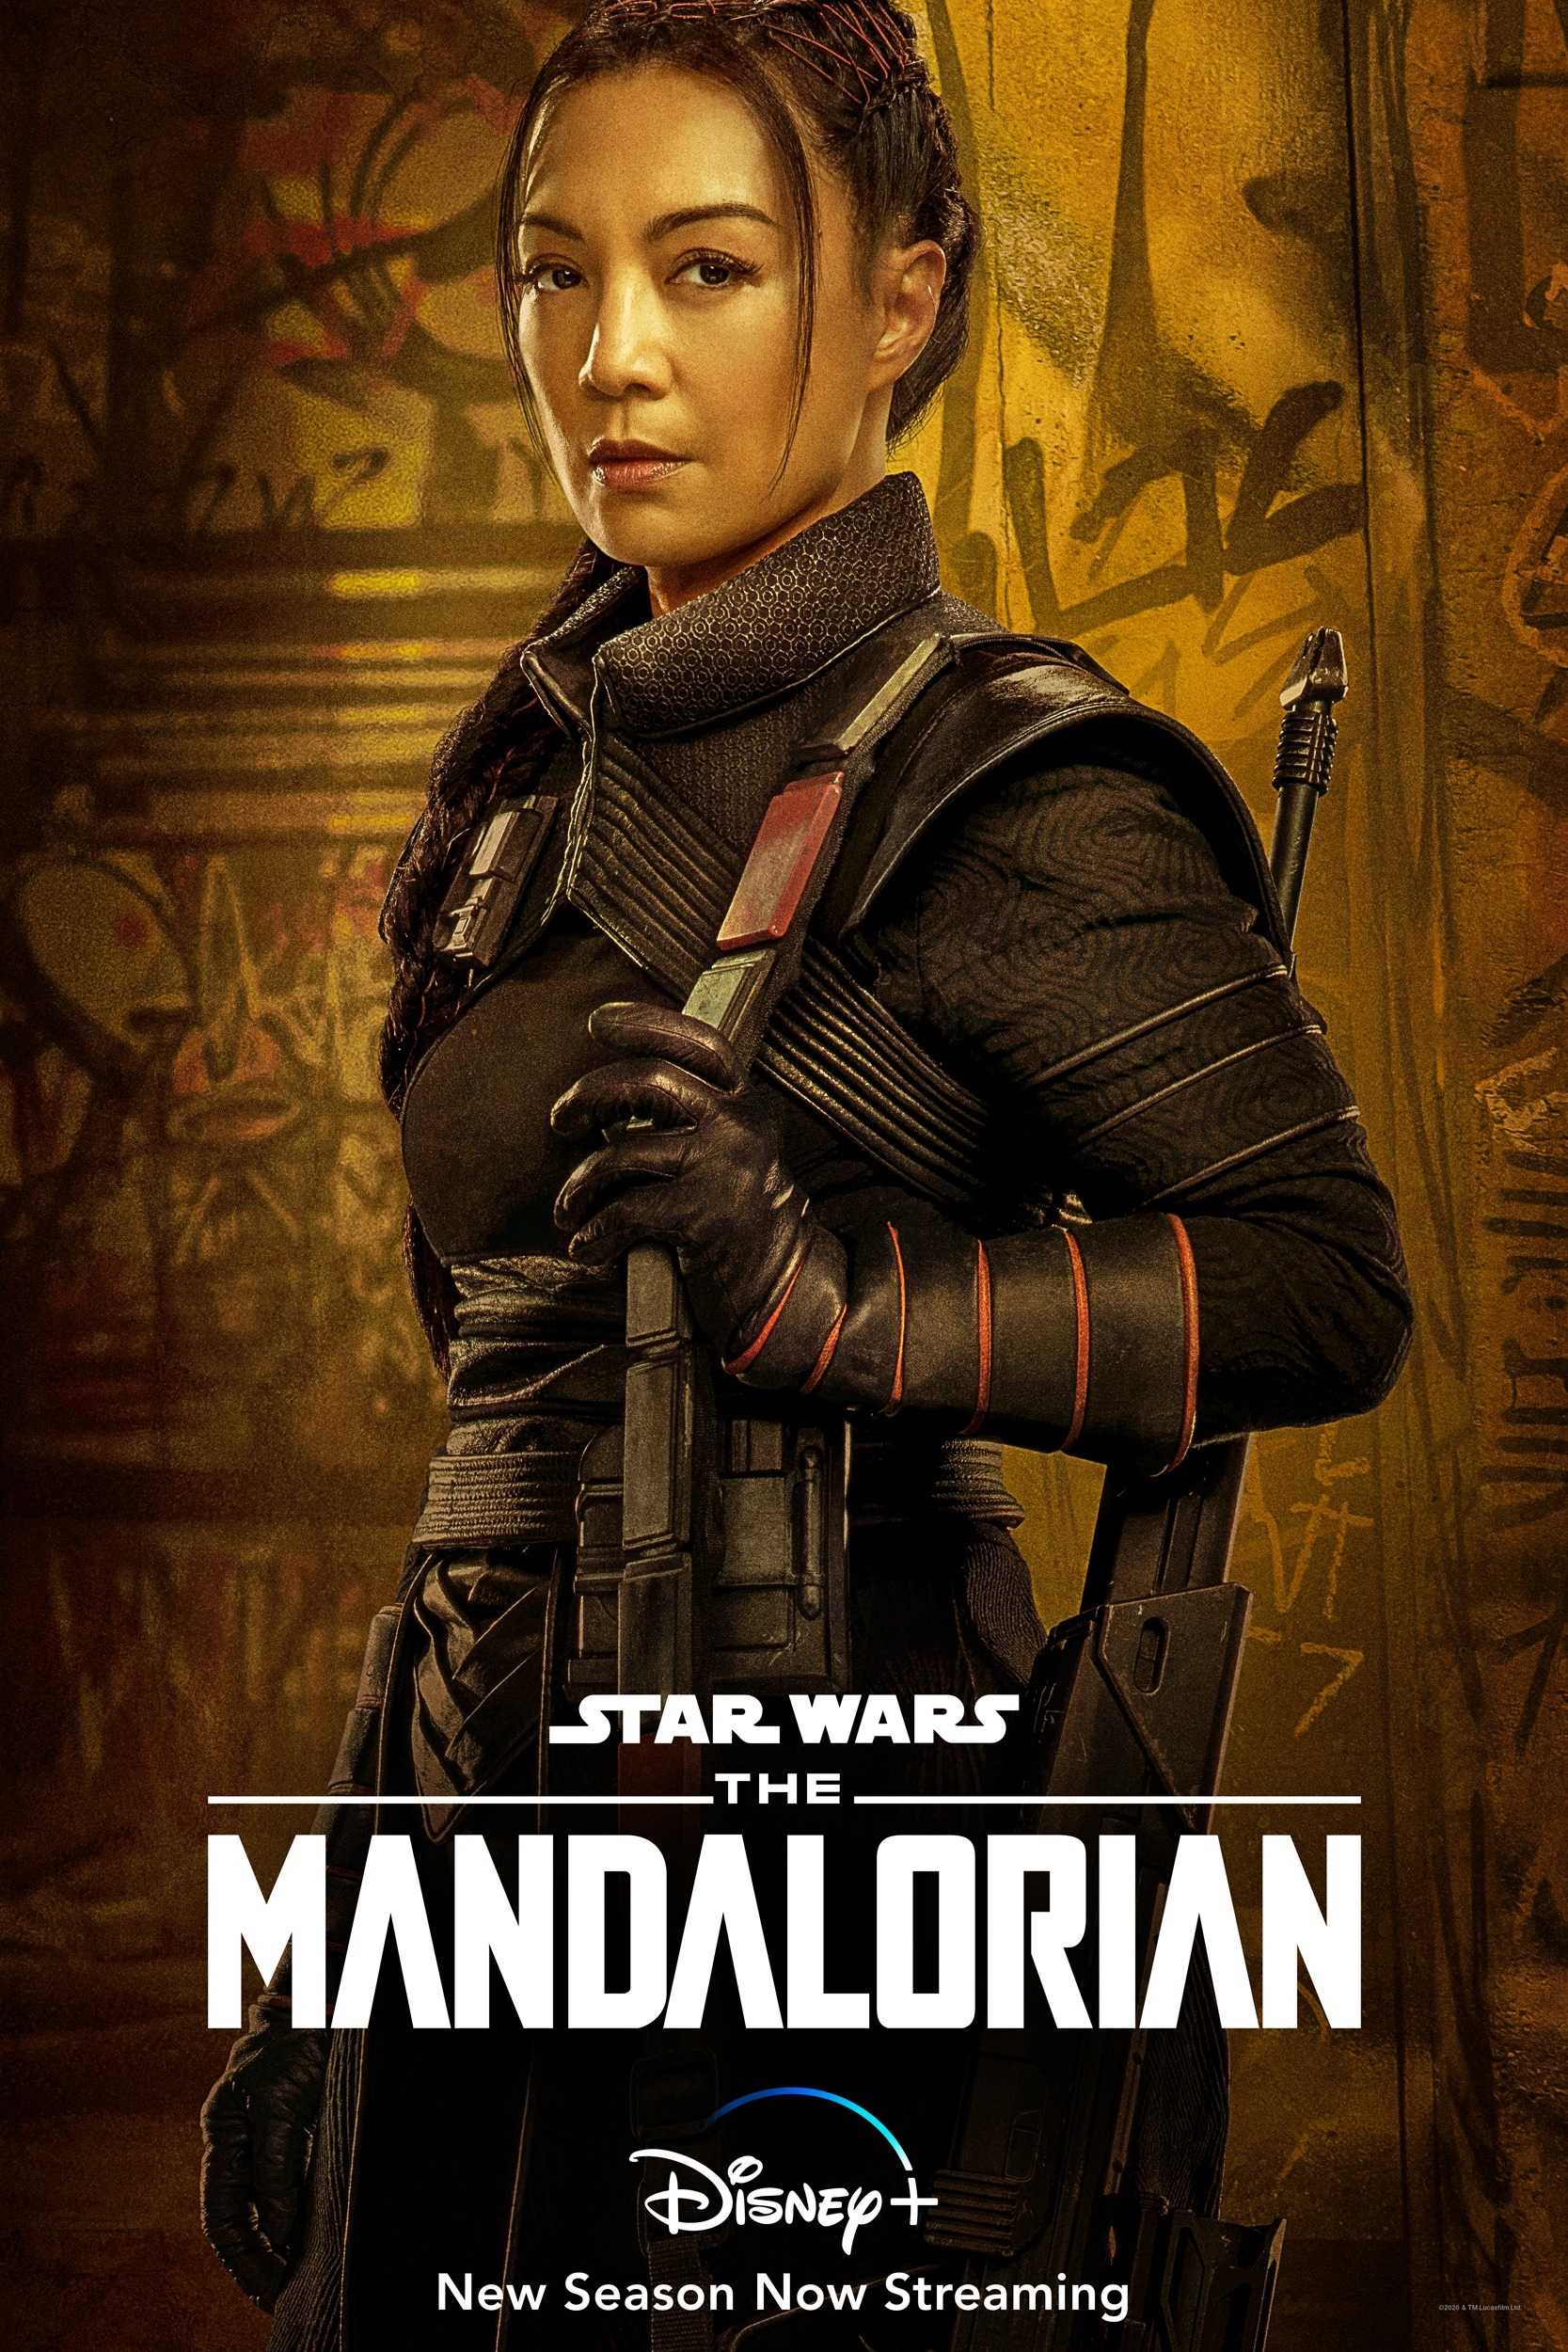 The Mandalorian Character Poster Fennec Shand